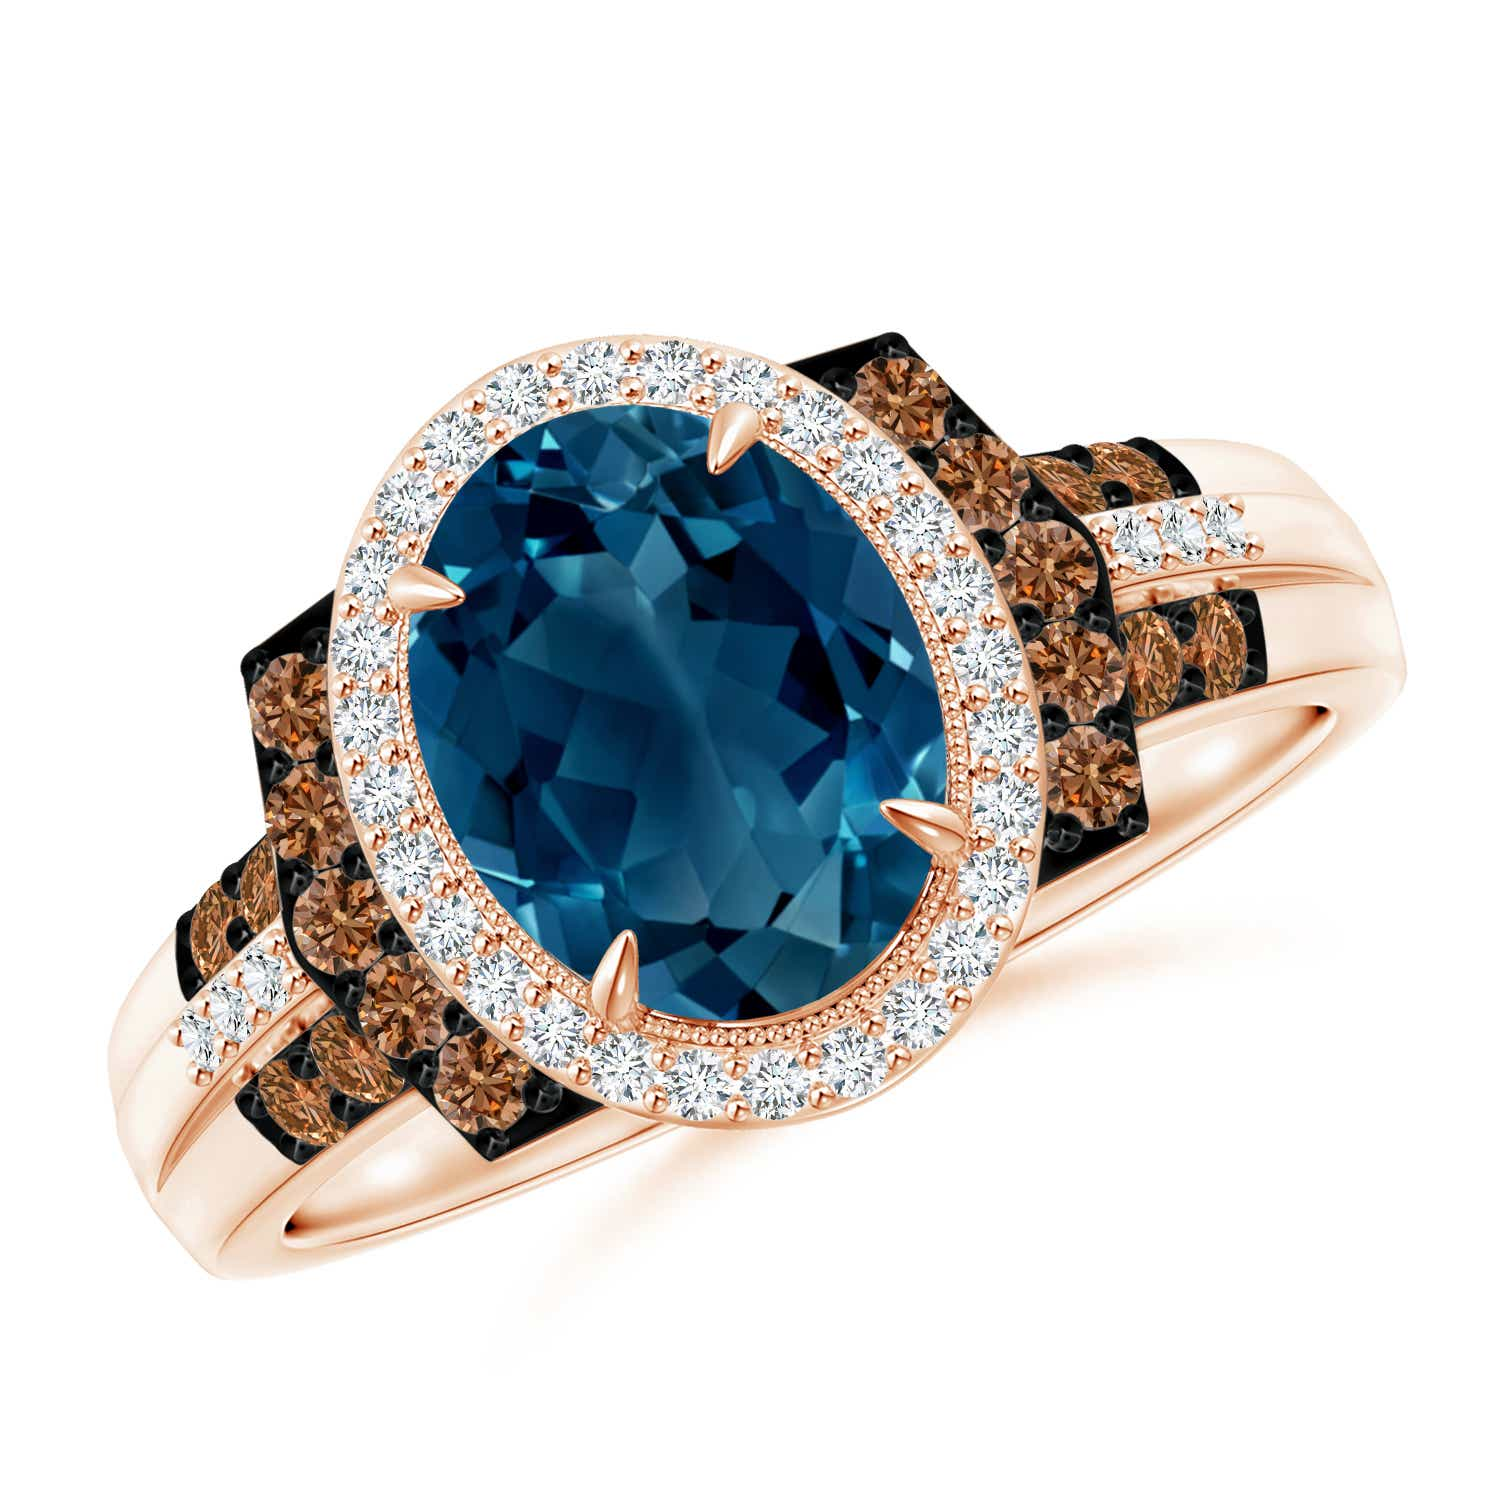 Vintage Style London Blue Topaz Halo Cocktail Ring - Angara.com